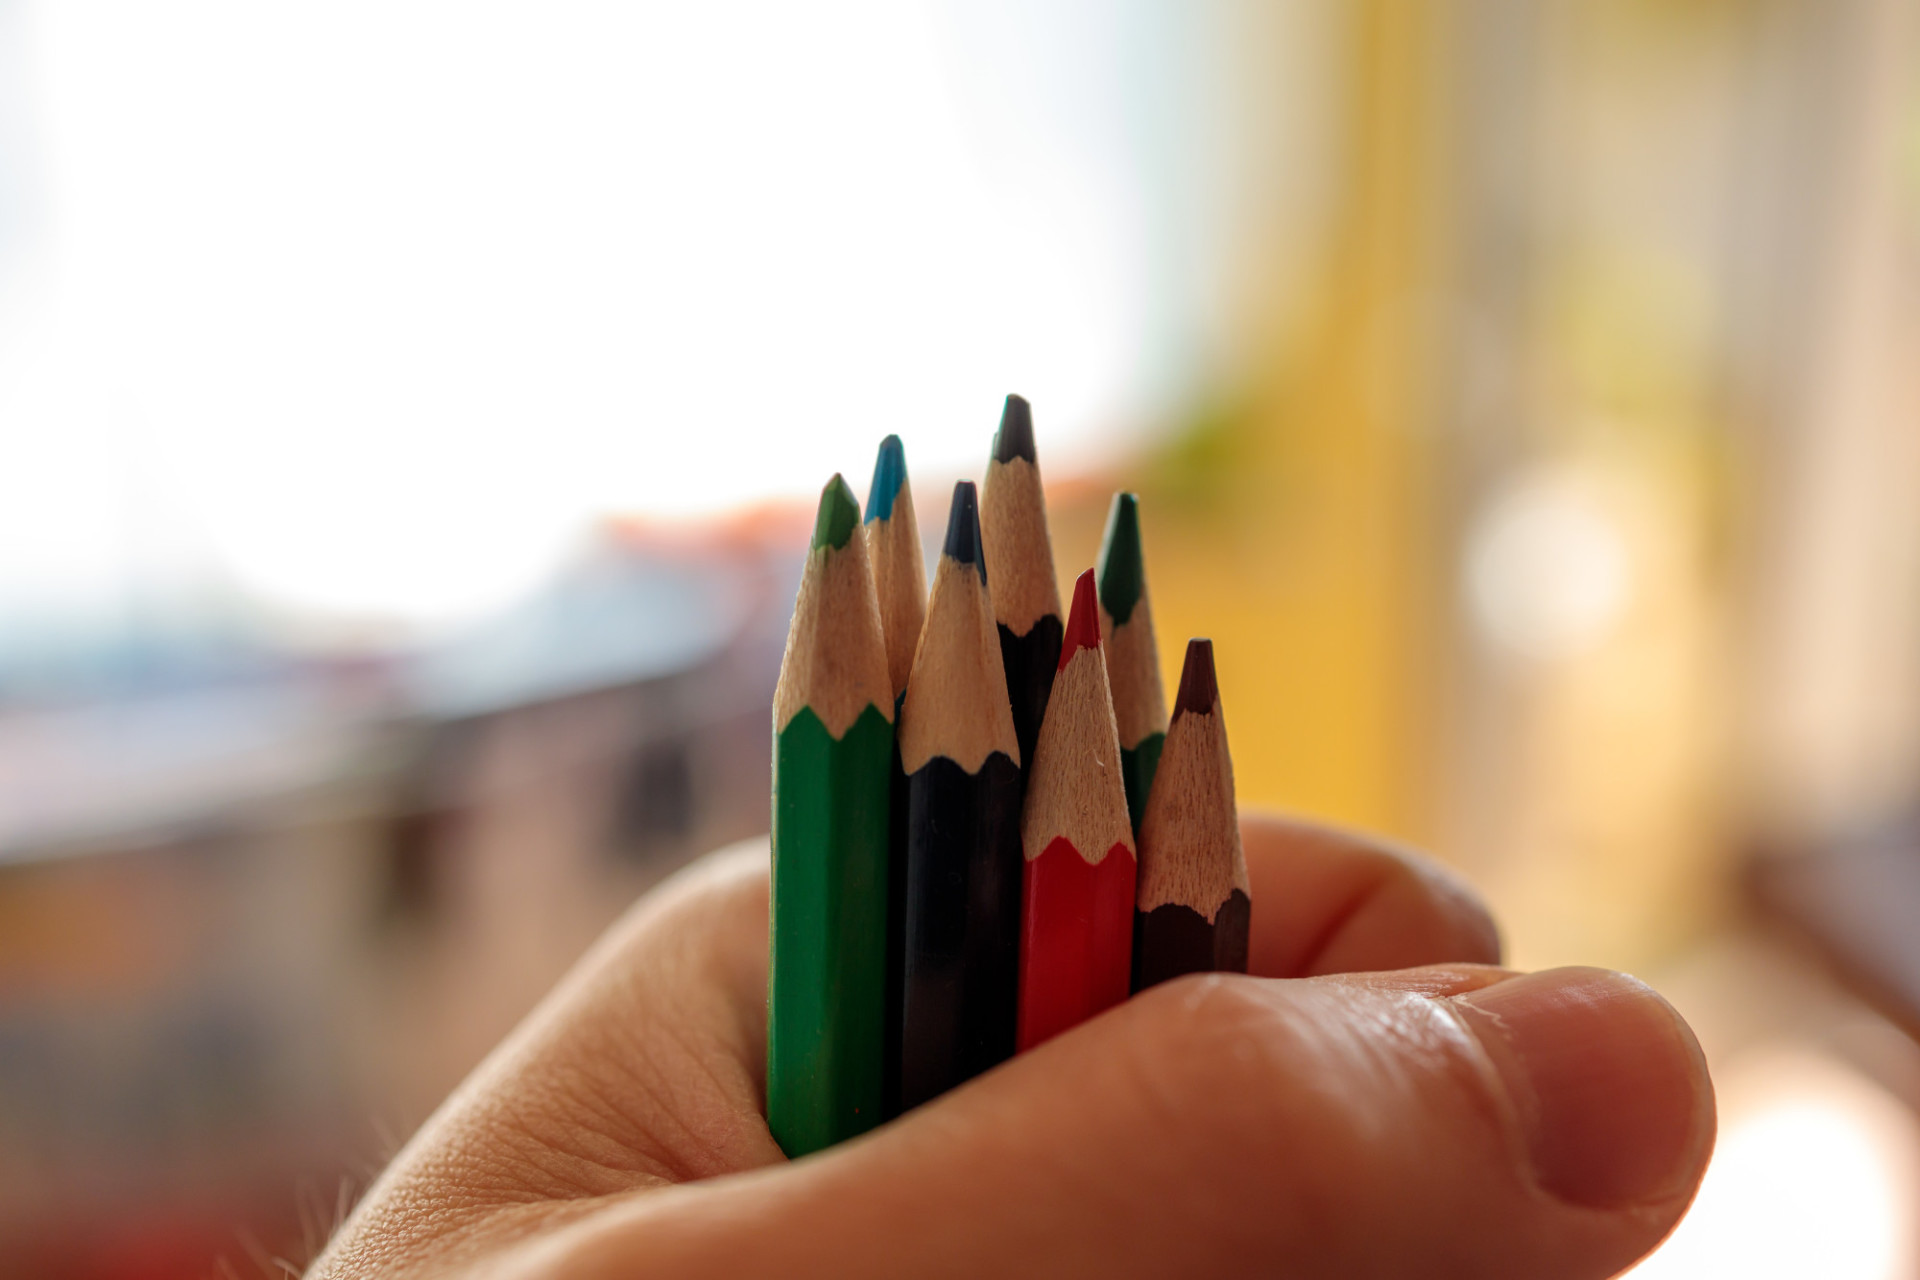 A pile of crayons firmly in hand